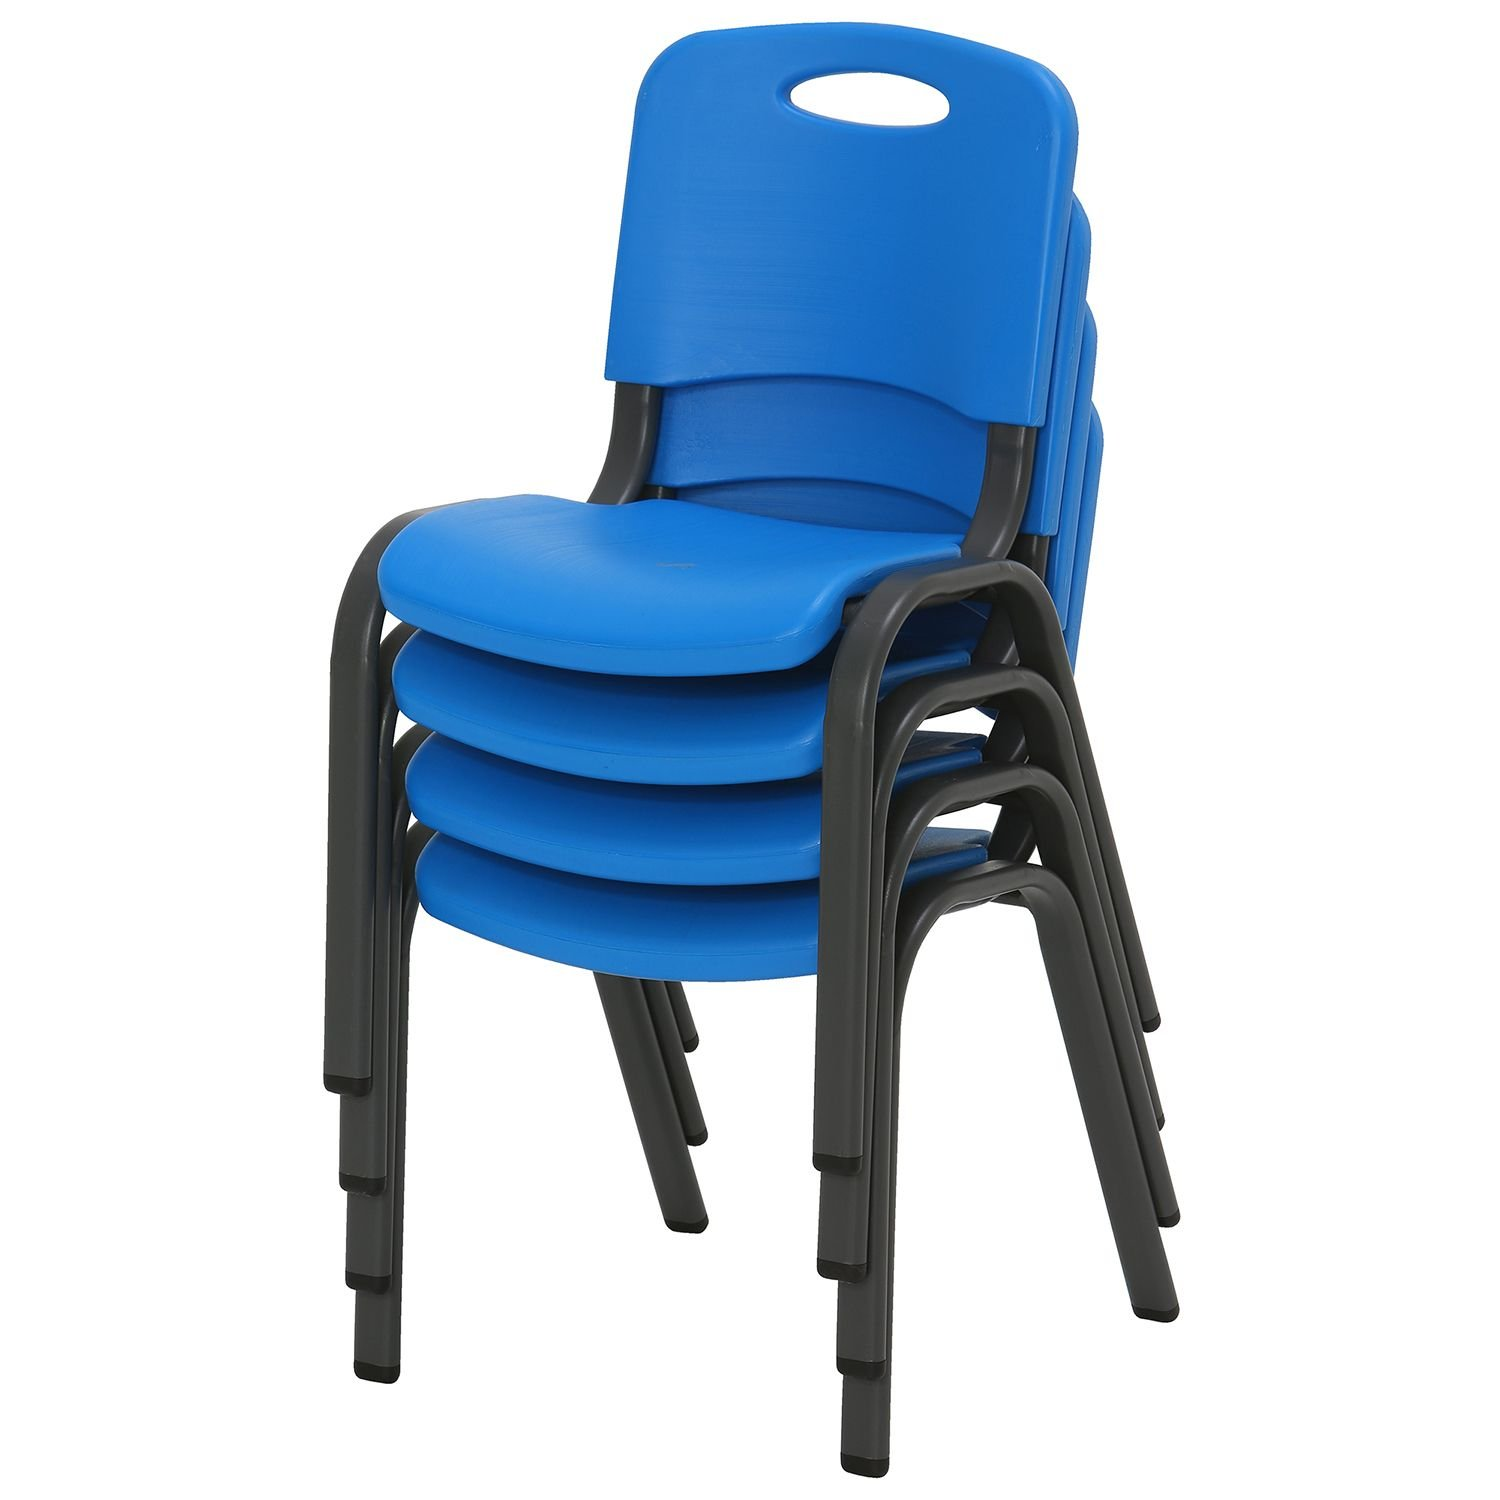 Lifetime Kids Stacking Chair, Dragonfly Blue - Pack of 4